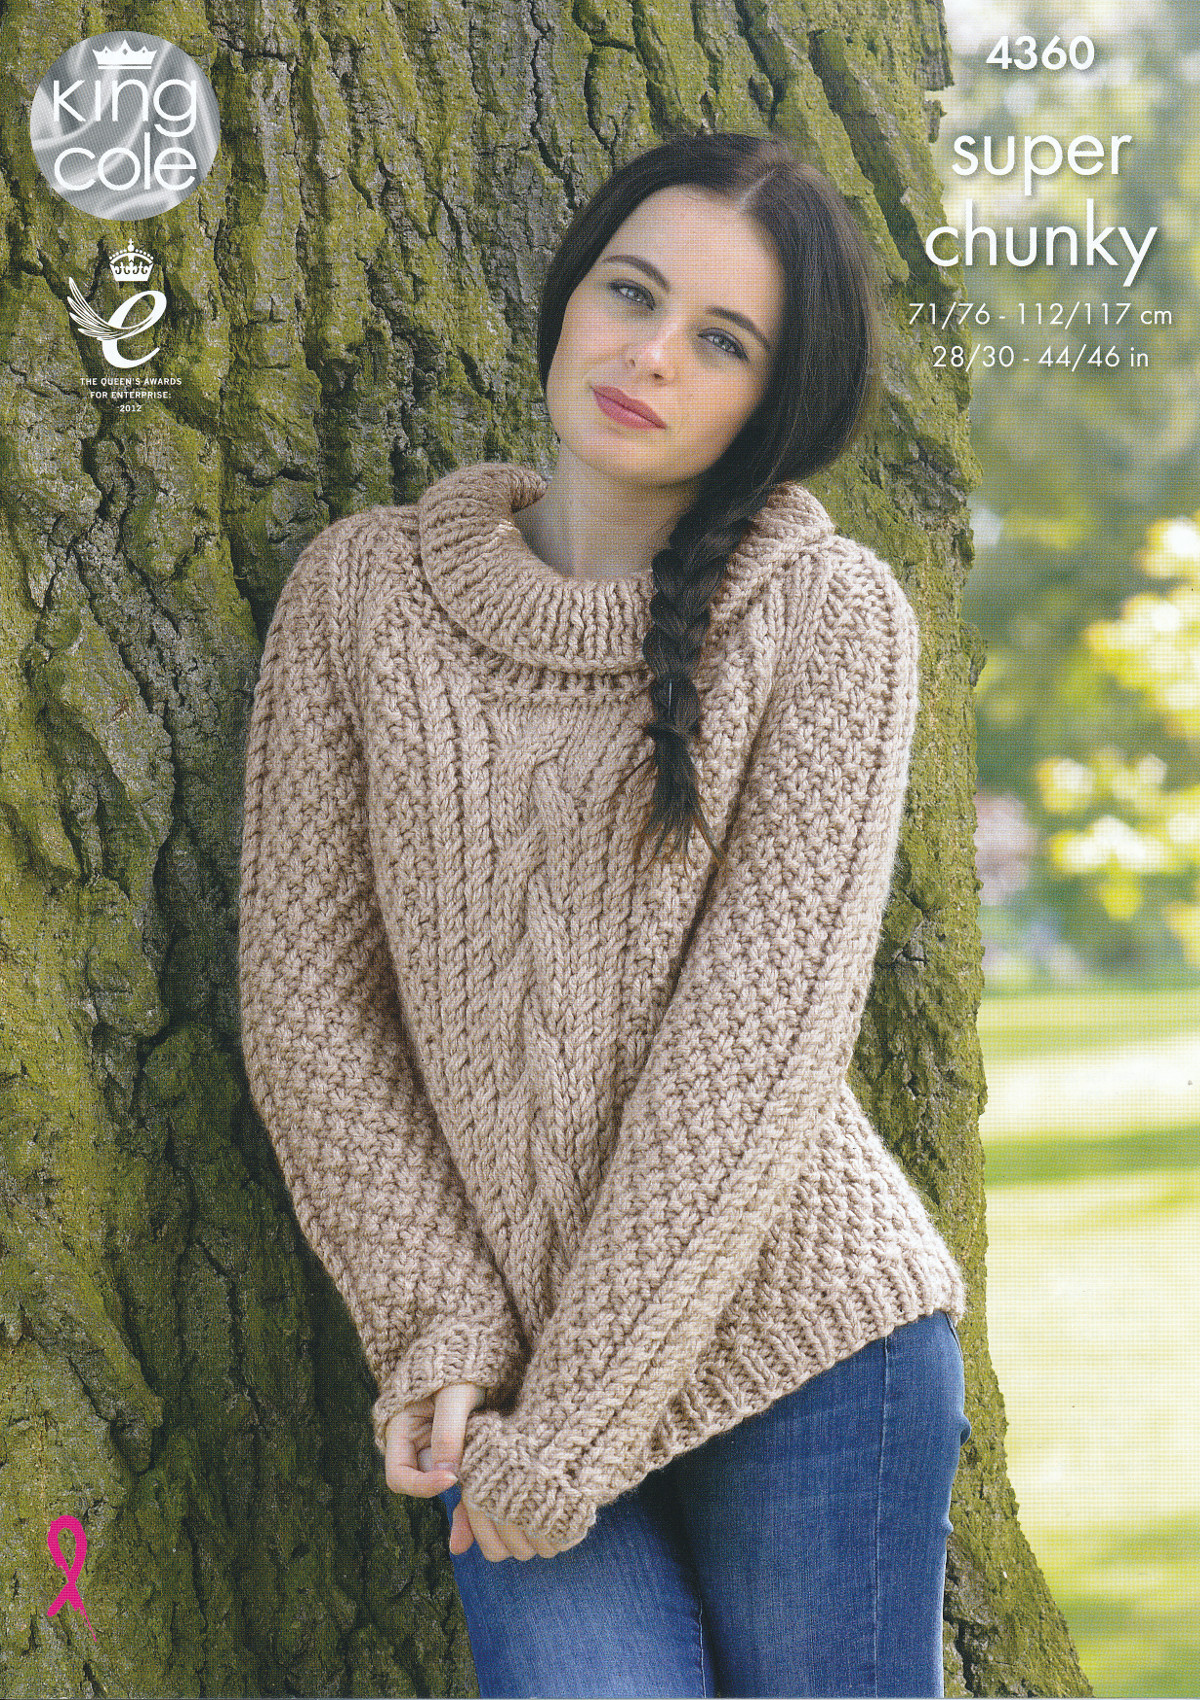 Luxury La S Super Chunky Knitting Pattern King Cole Cable Knit Chunky Knit Of Incredible 50 Pictures Chunky Knit